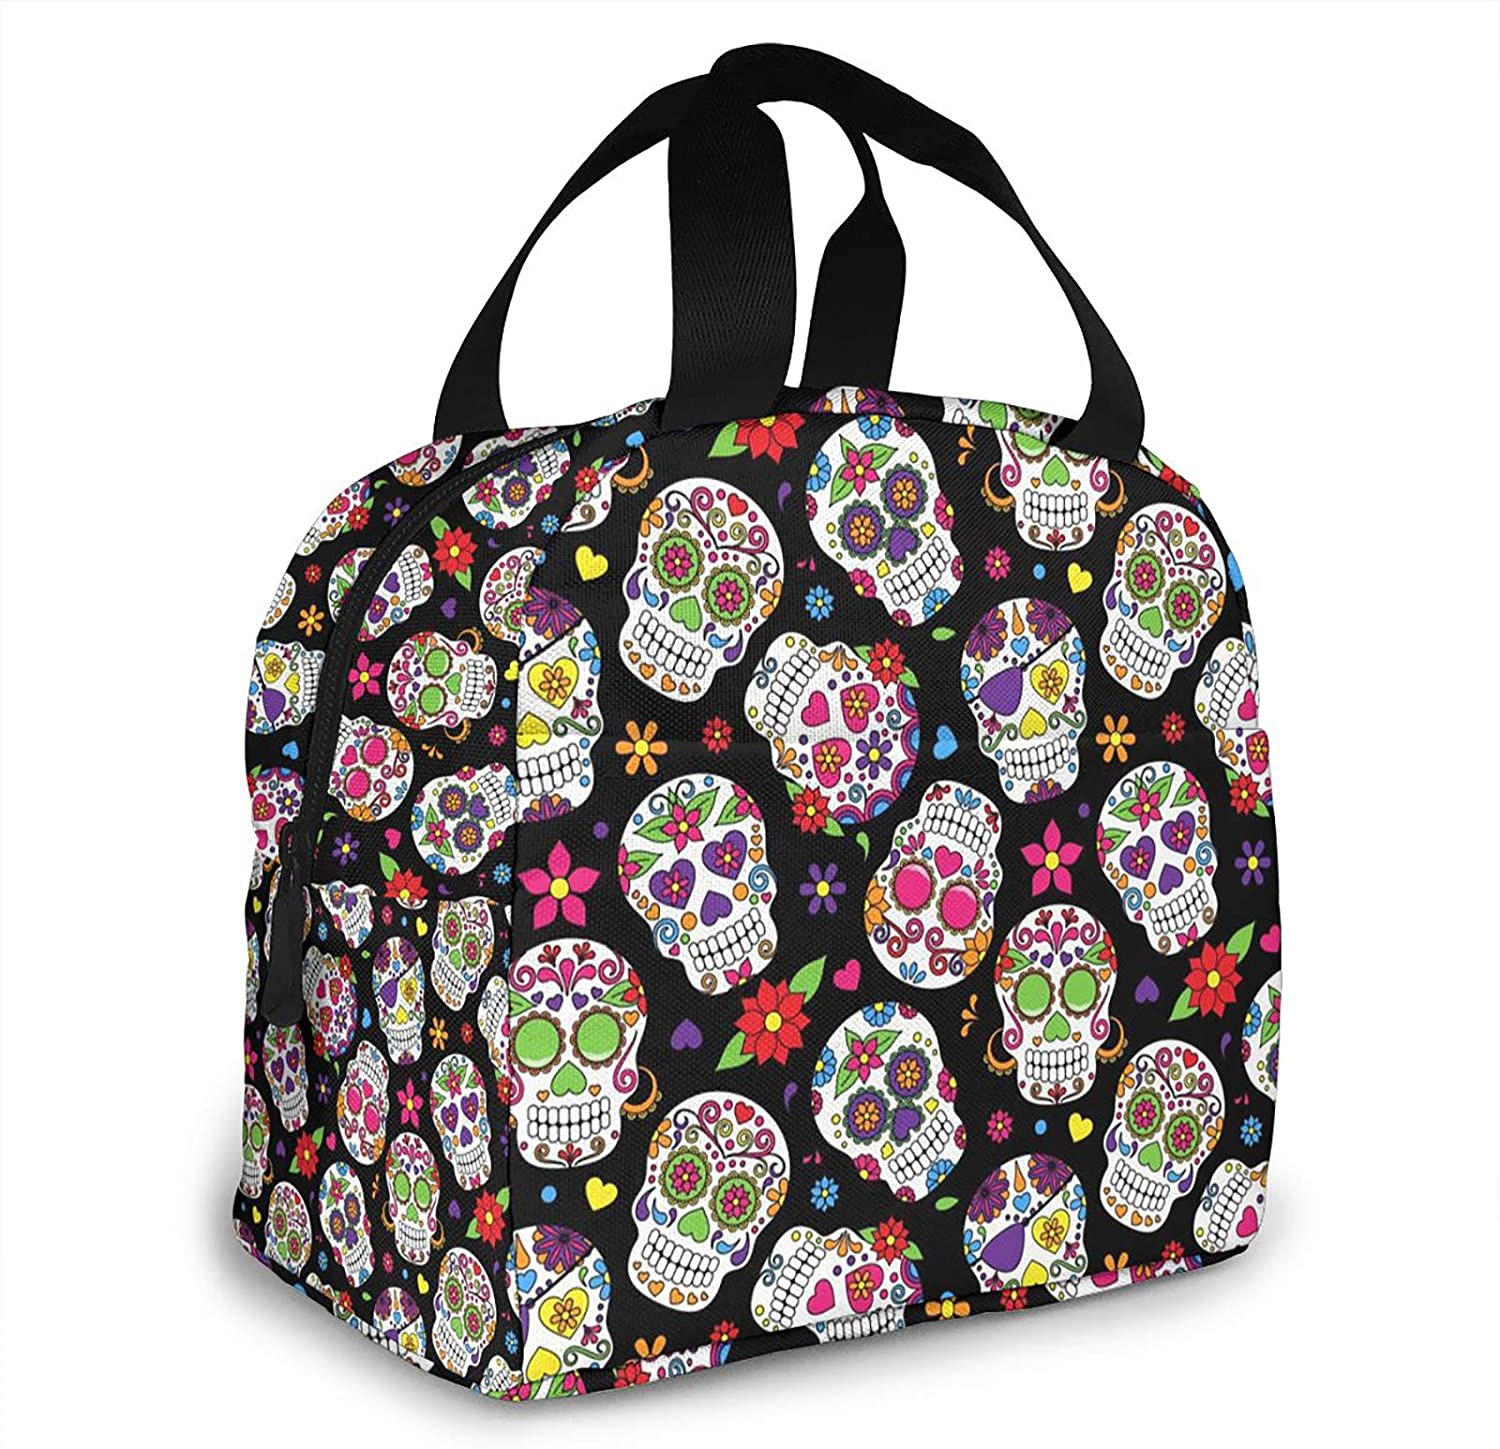 AHOOCUSTOM Lunch Bags, Day of The Dead Sugar Skull Insulated Lunch Box, Reusable Cooler Tote Bag Waterproof Lunch Holder for Women & Men Work Picnic or Travel